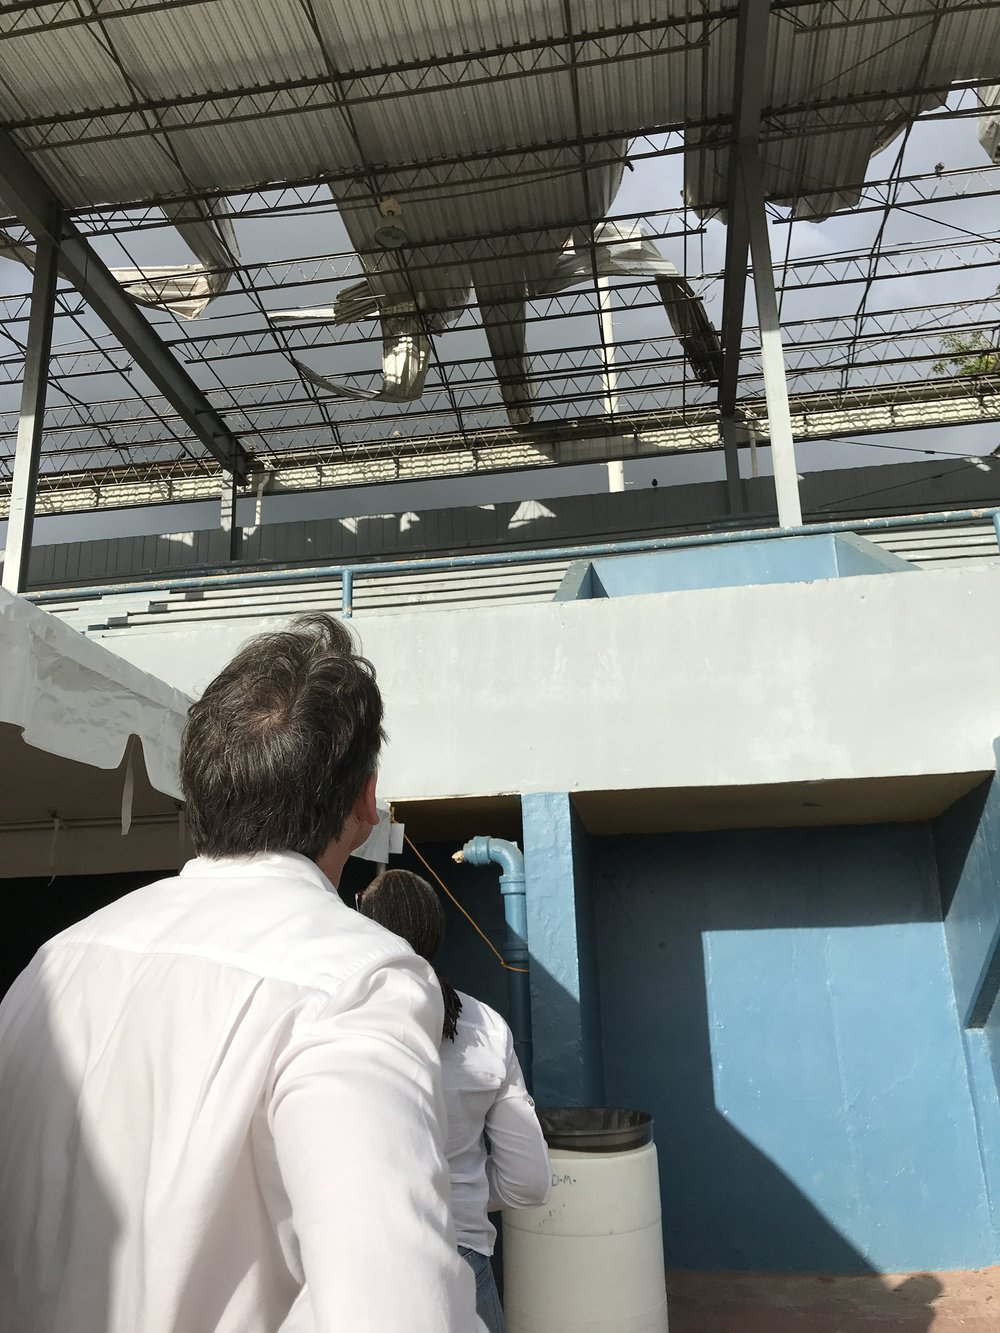 IAAF president Seb Coe surveying roof damage at a track and field stadium in the San Juan suburb of Toa Boa